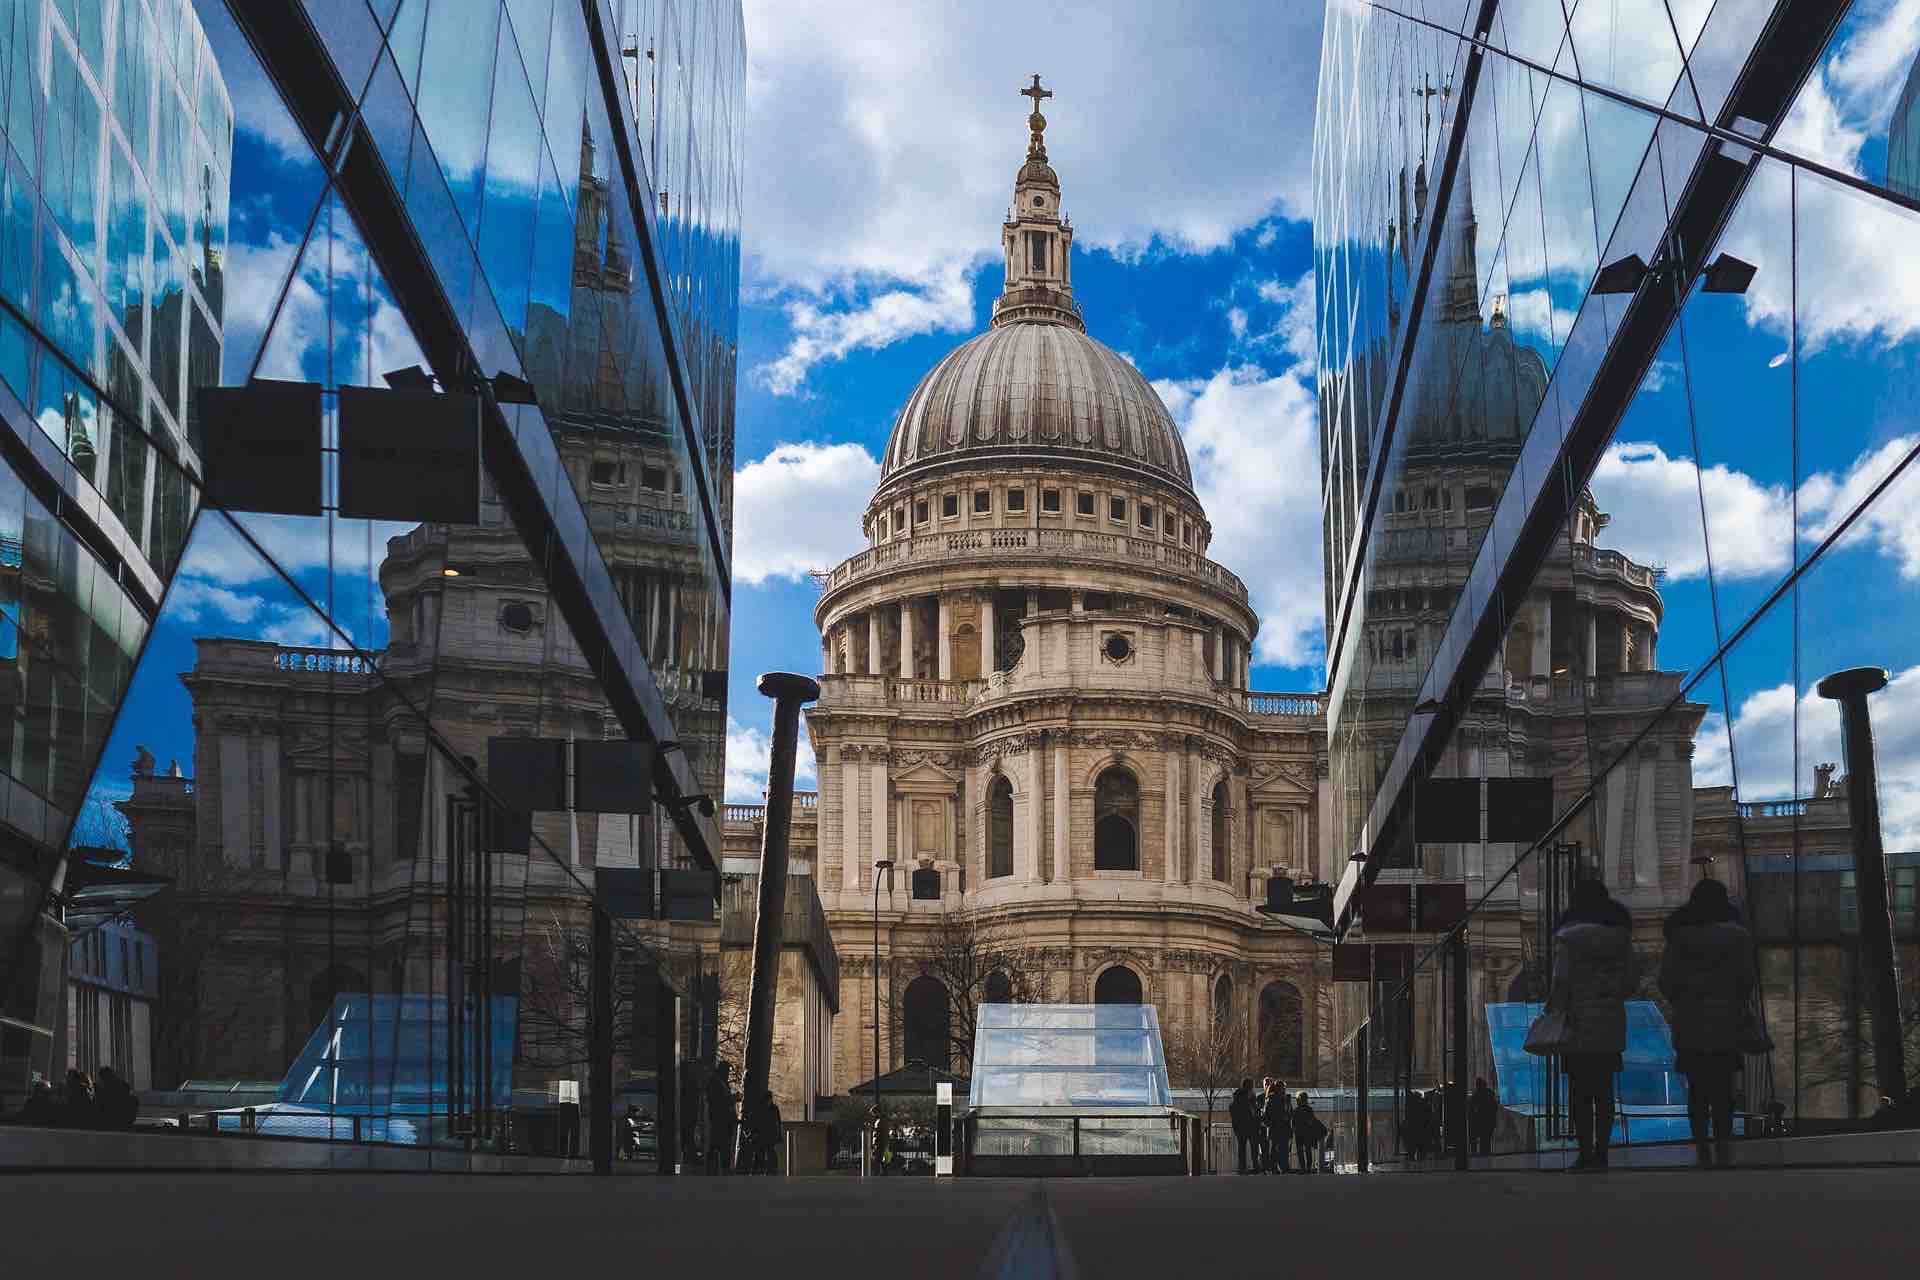 6/St. Paul's Cathedral